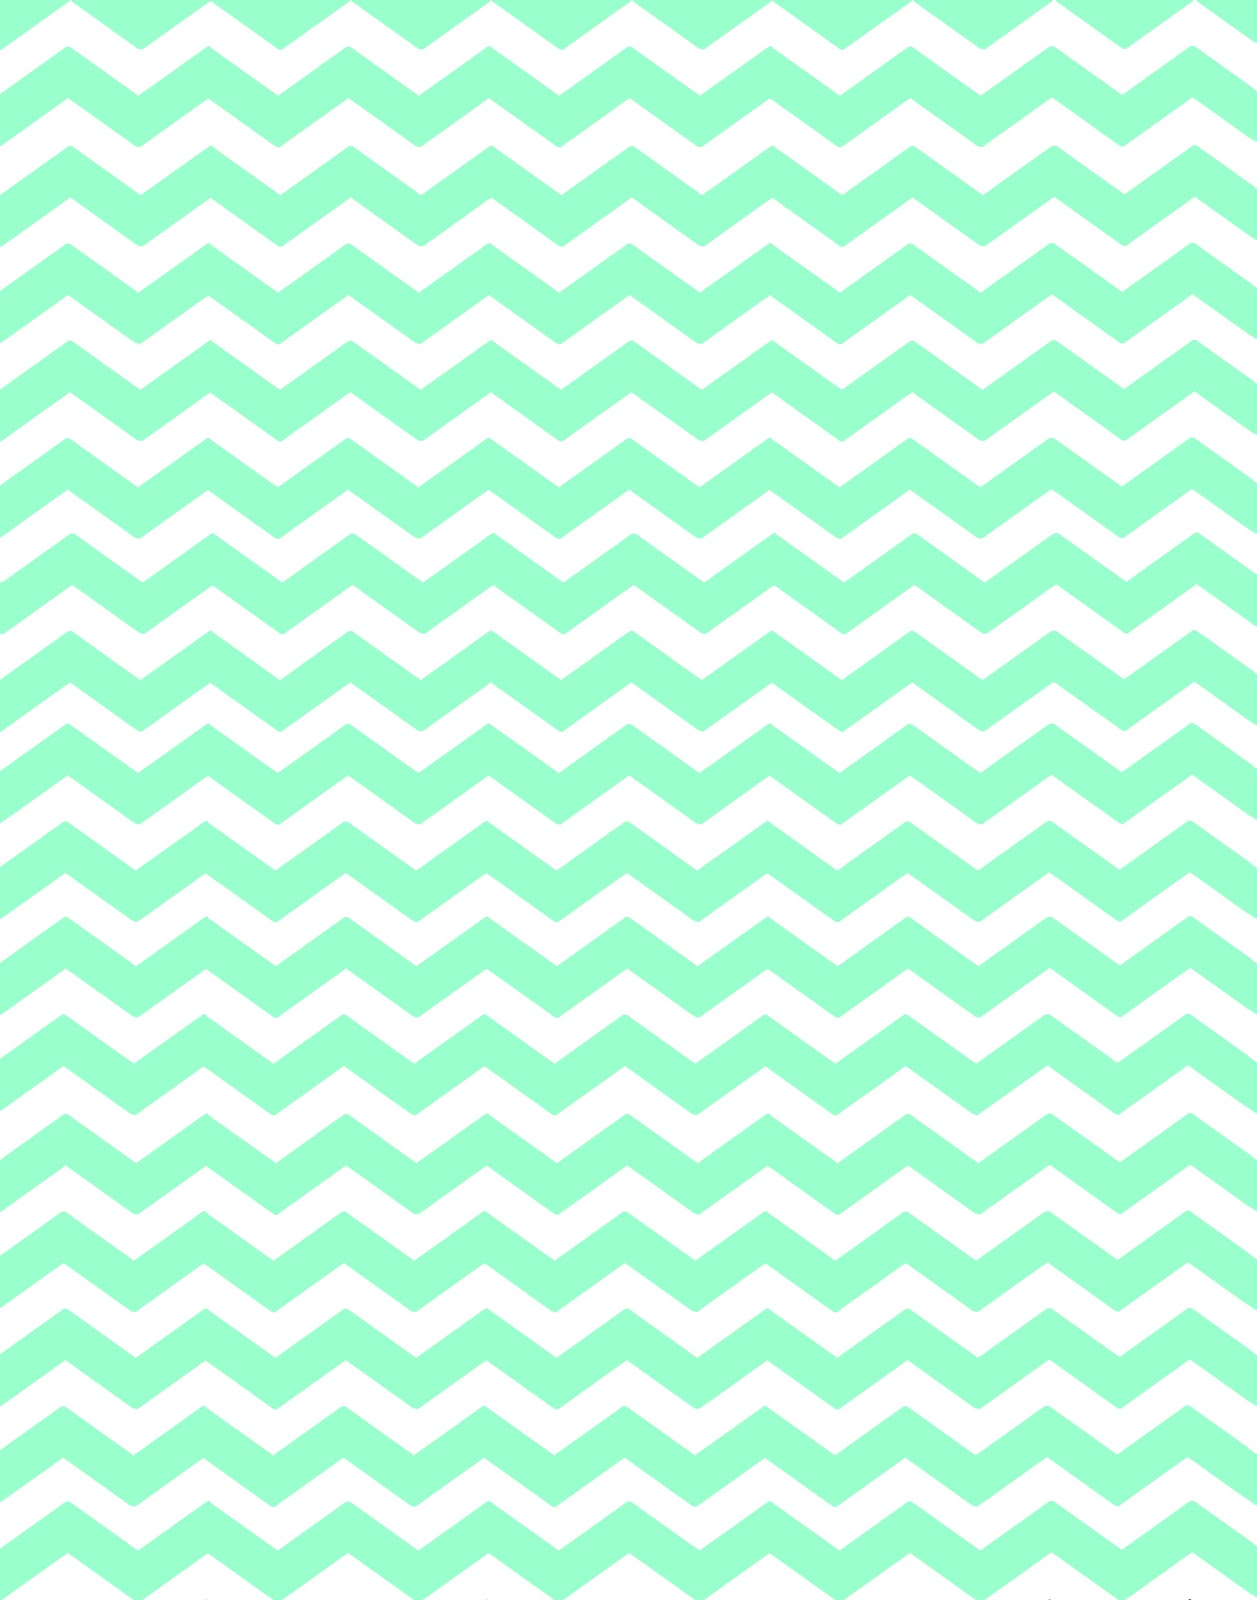 Mint Chevron Background HD Wallpapers on picsfaircom 1257x1600